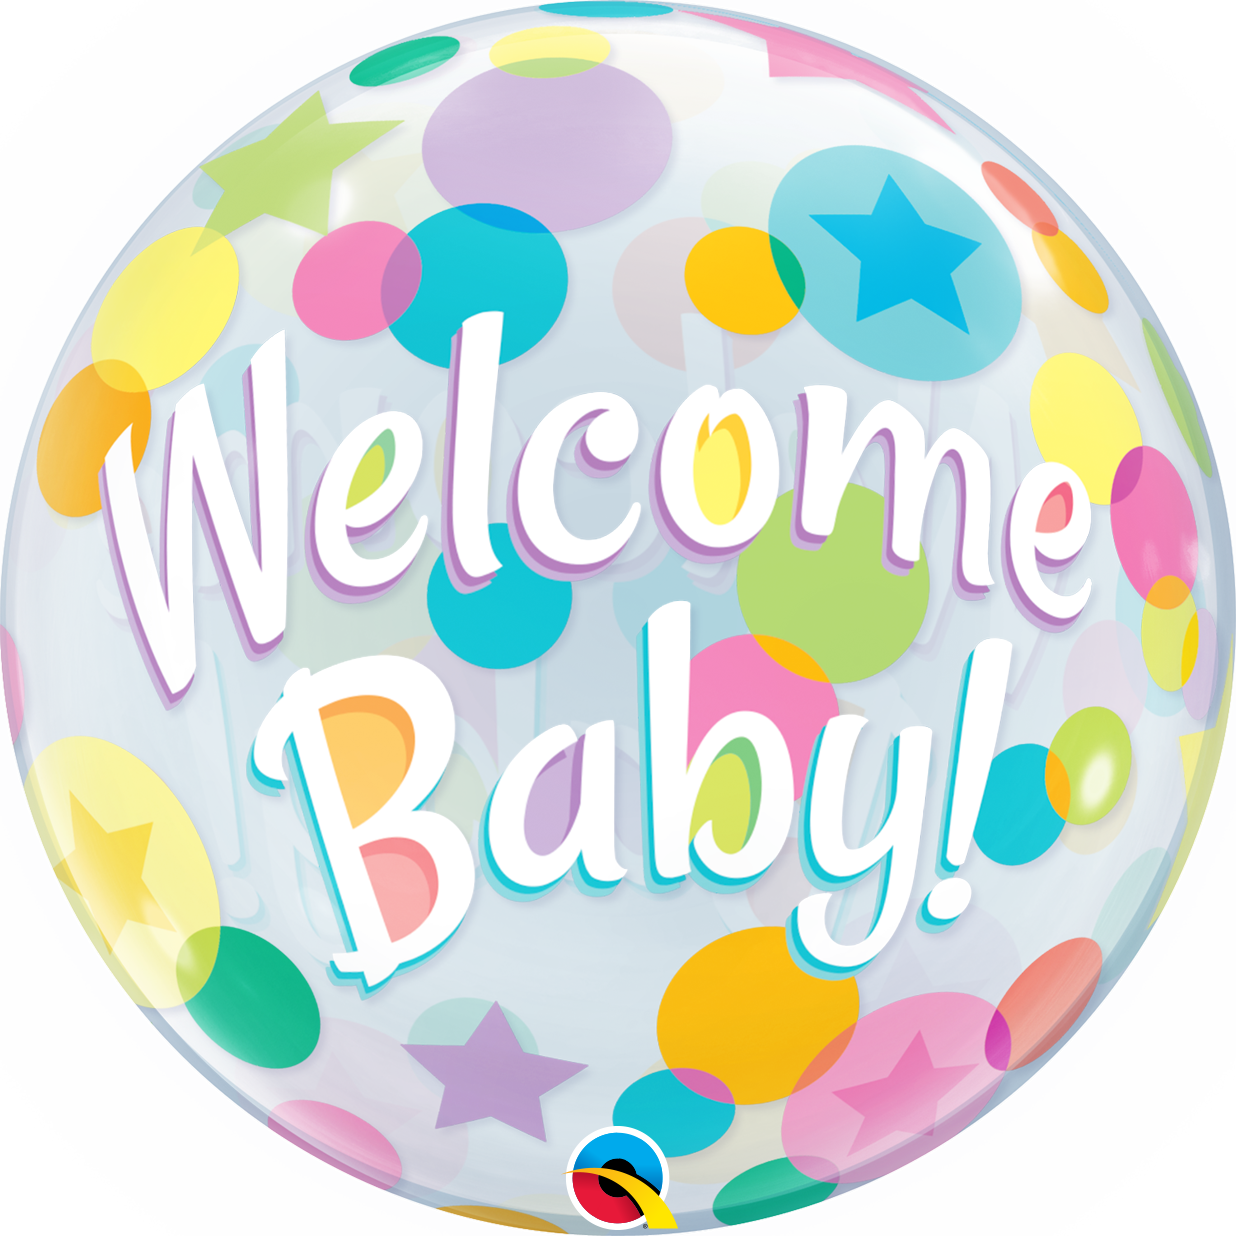 Welcome baby bubble wham. Dory clipart balloon